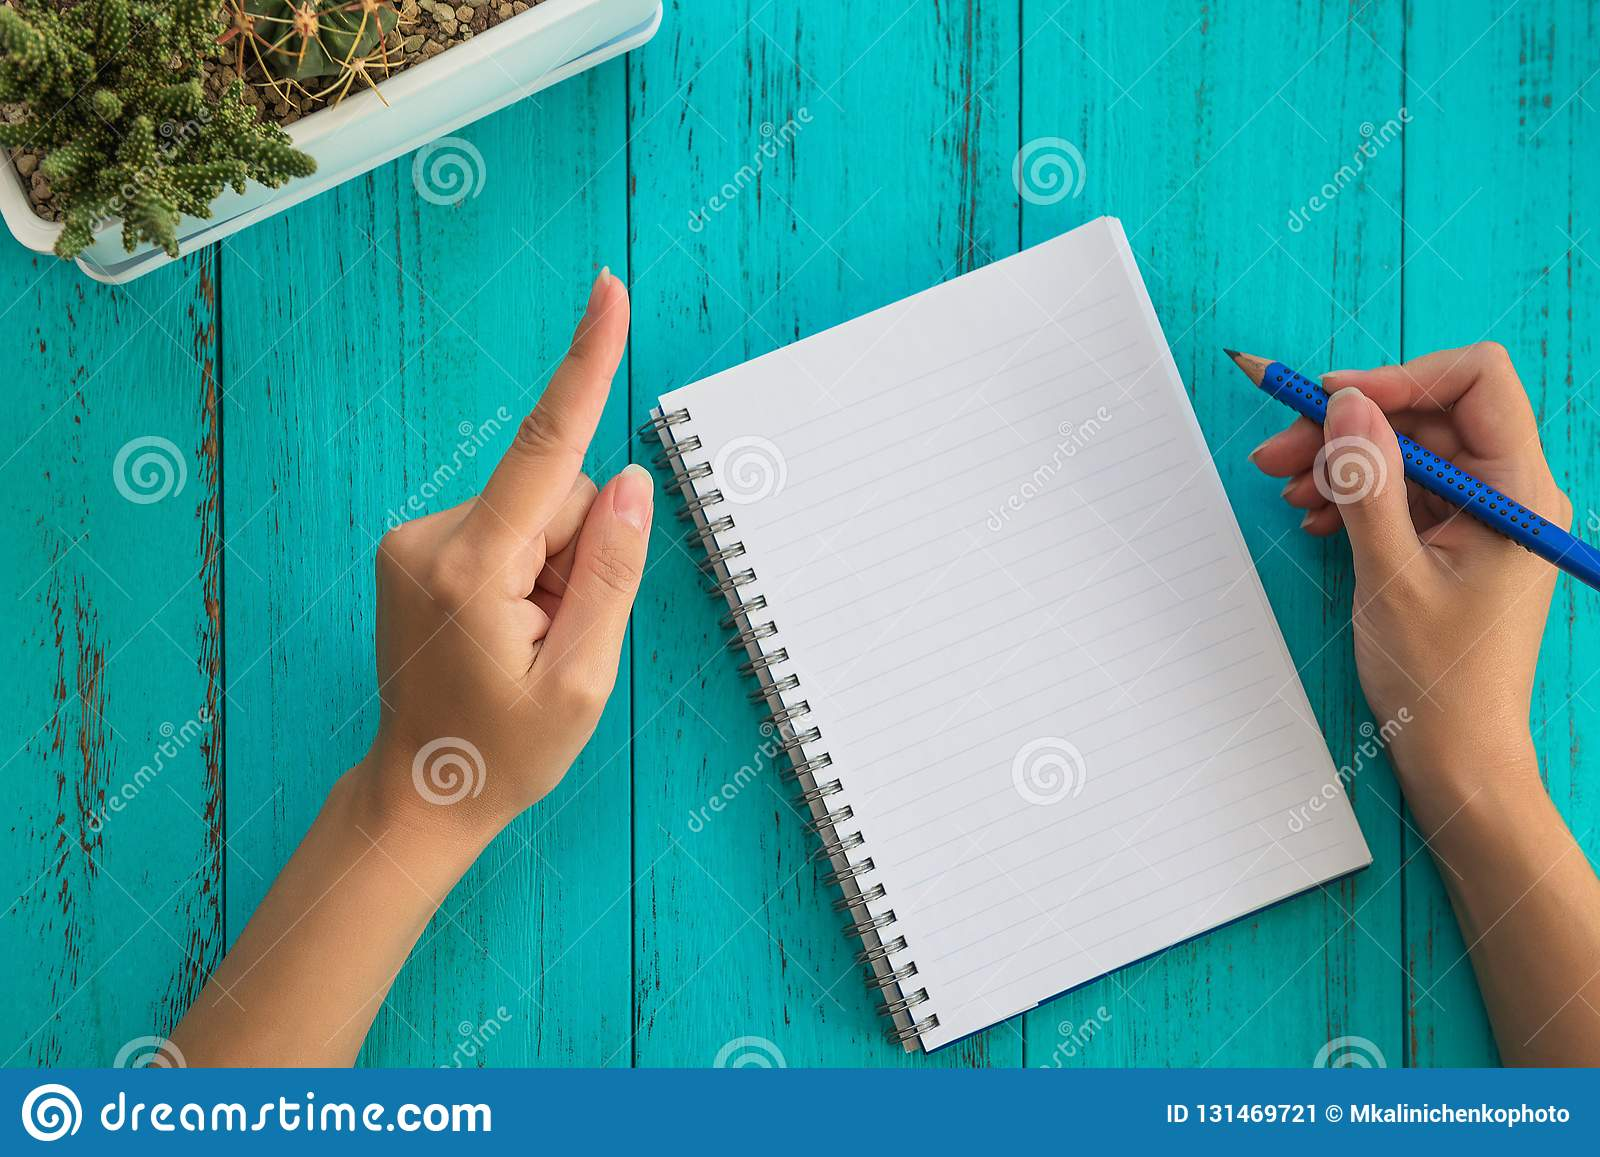 Girl holds pencil, prepares to write down goals for future in notebook, blue wooden table. Education and goals concept background